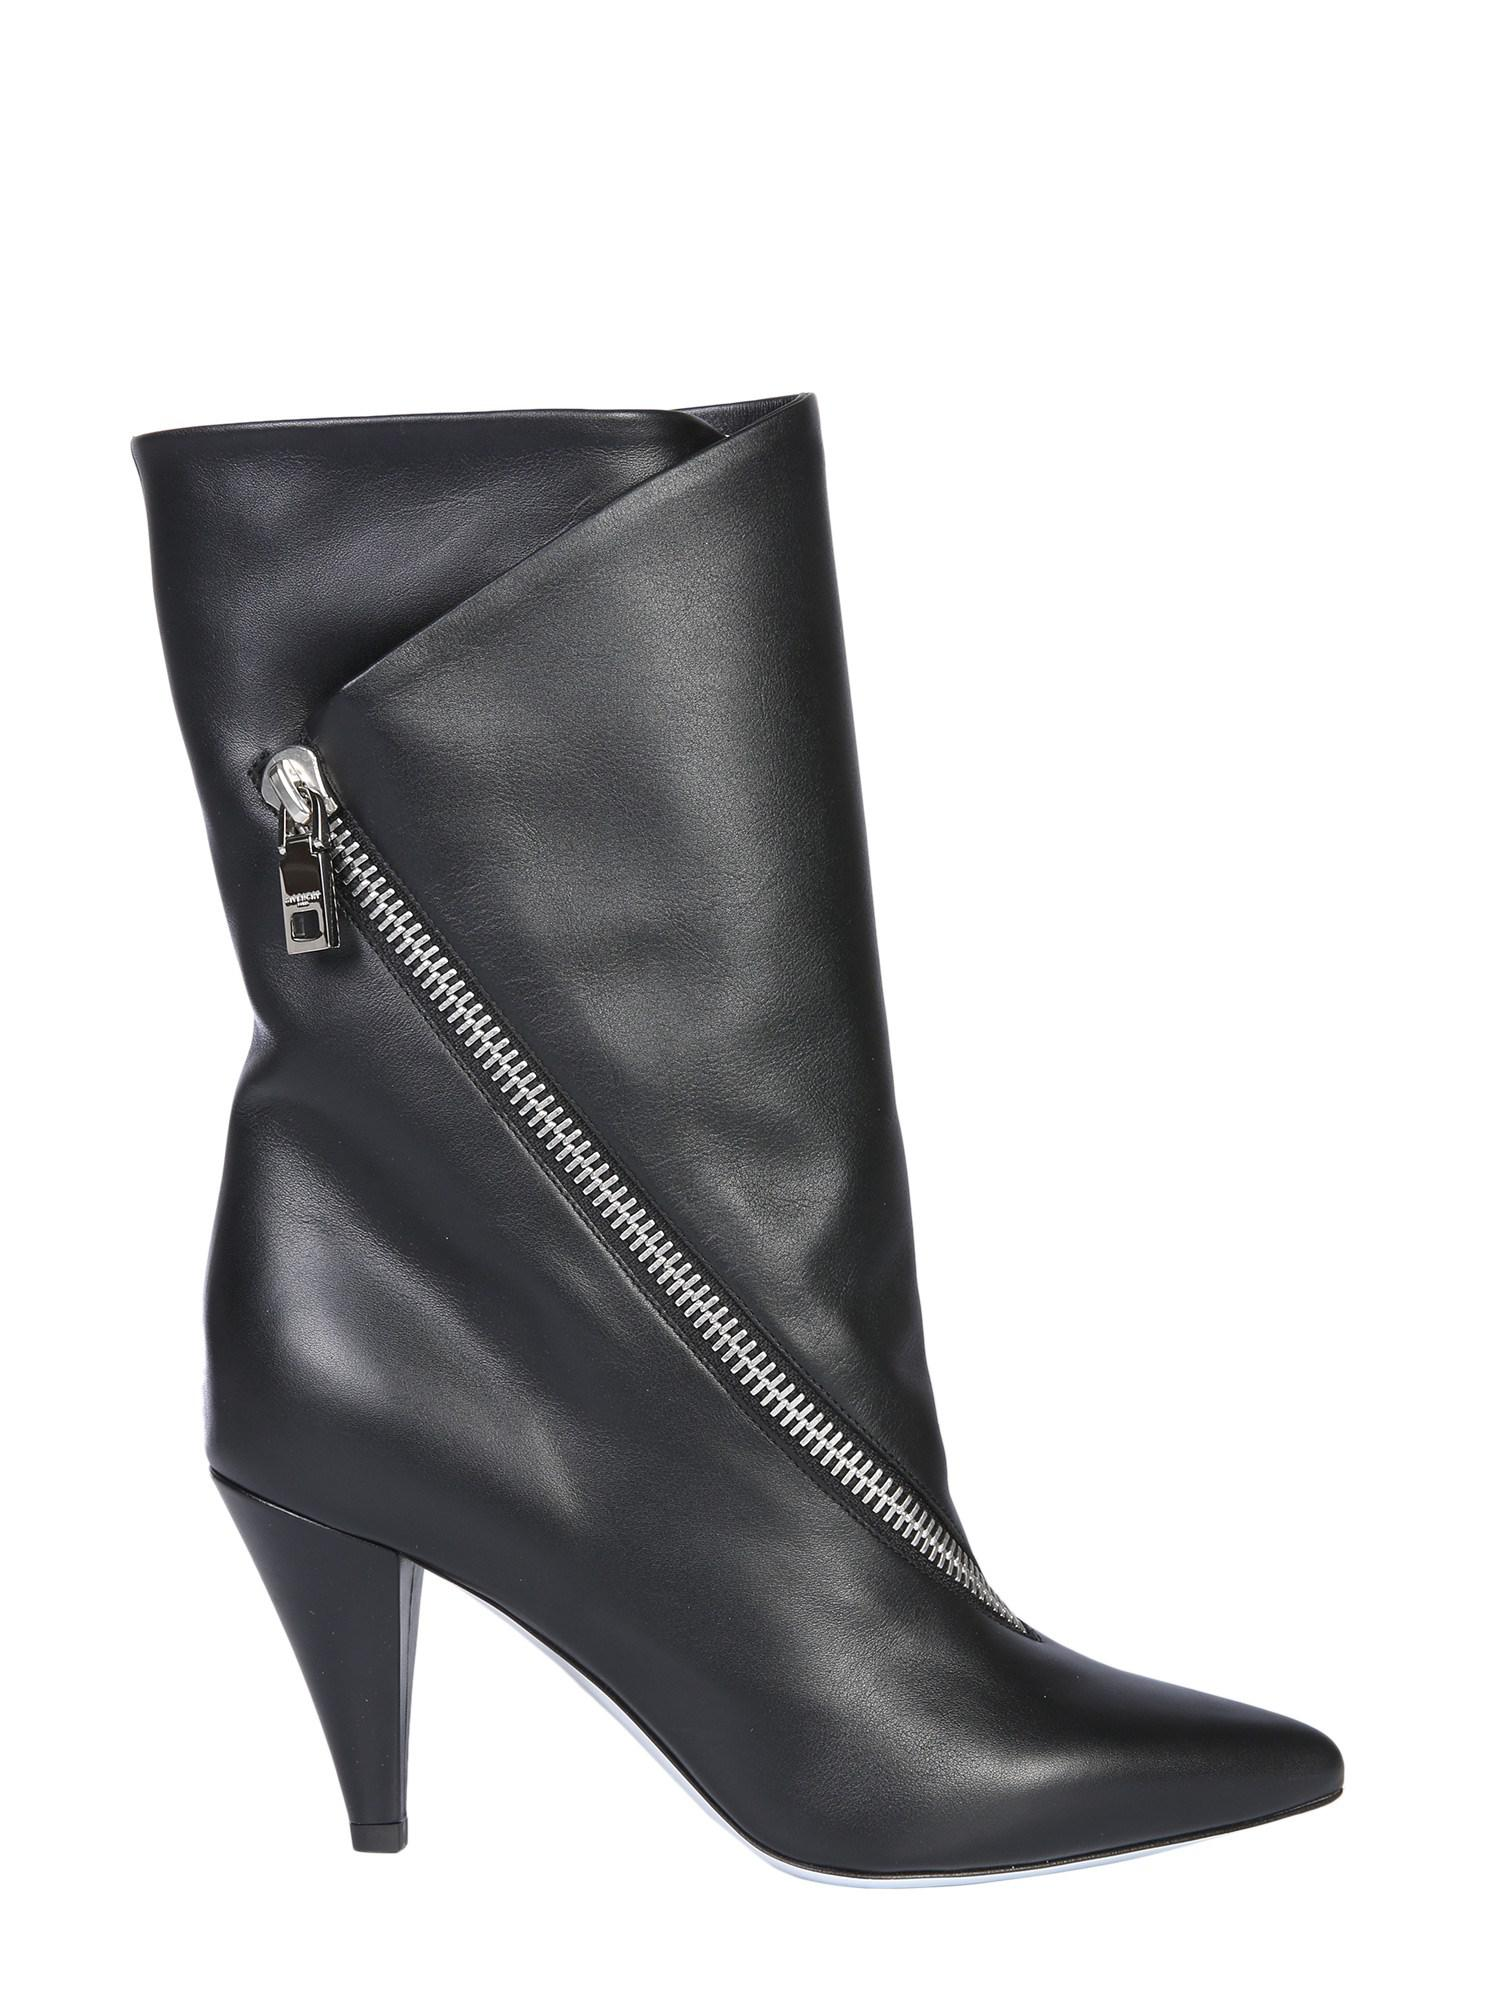 41b92f7d6ab5 Lyst - Givenchy Medium Leather Boots With Zip in Black